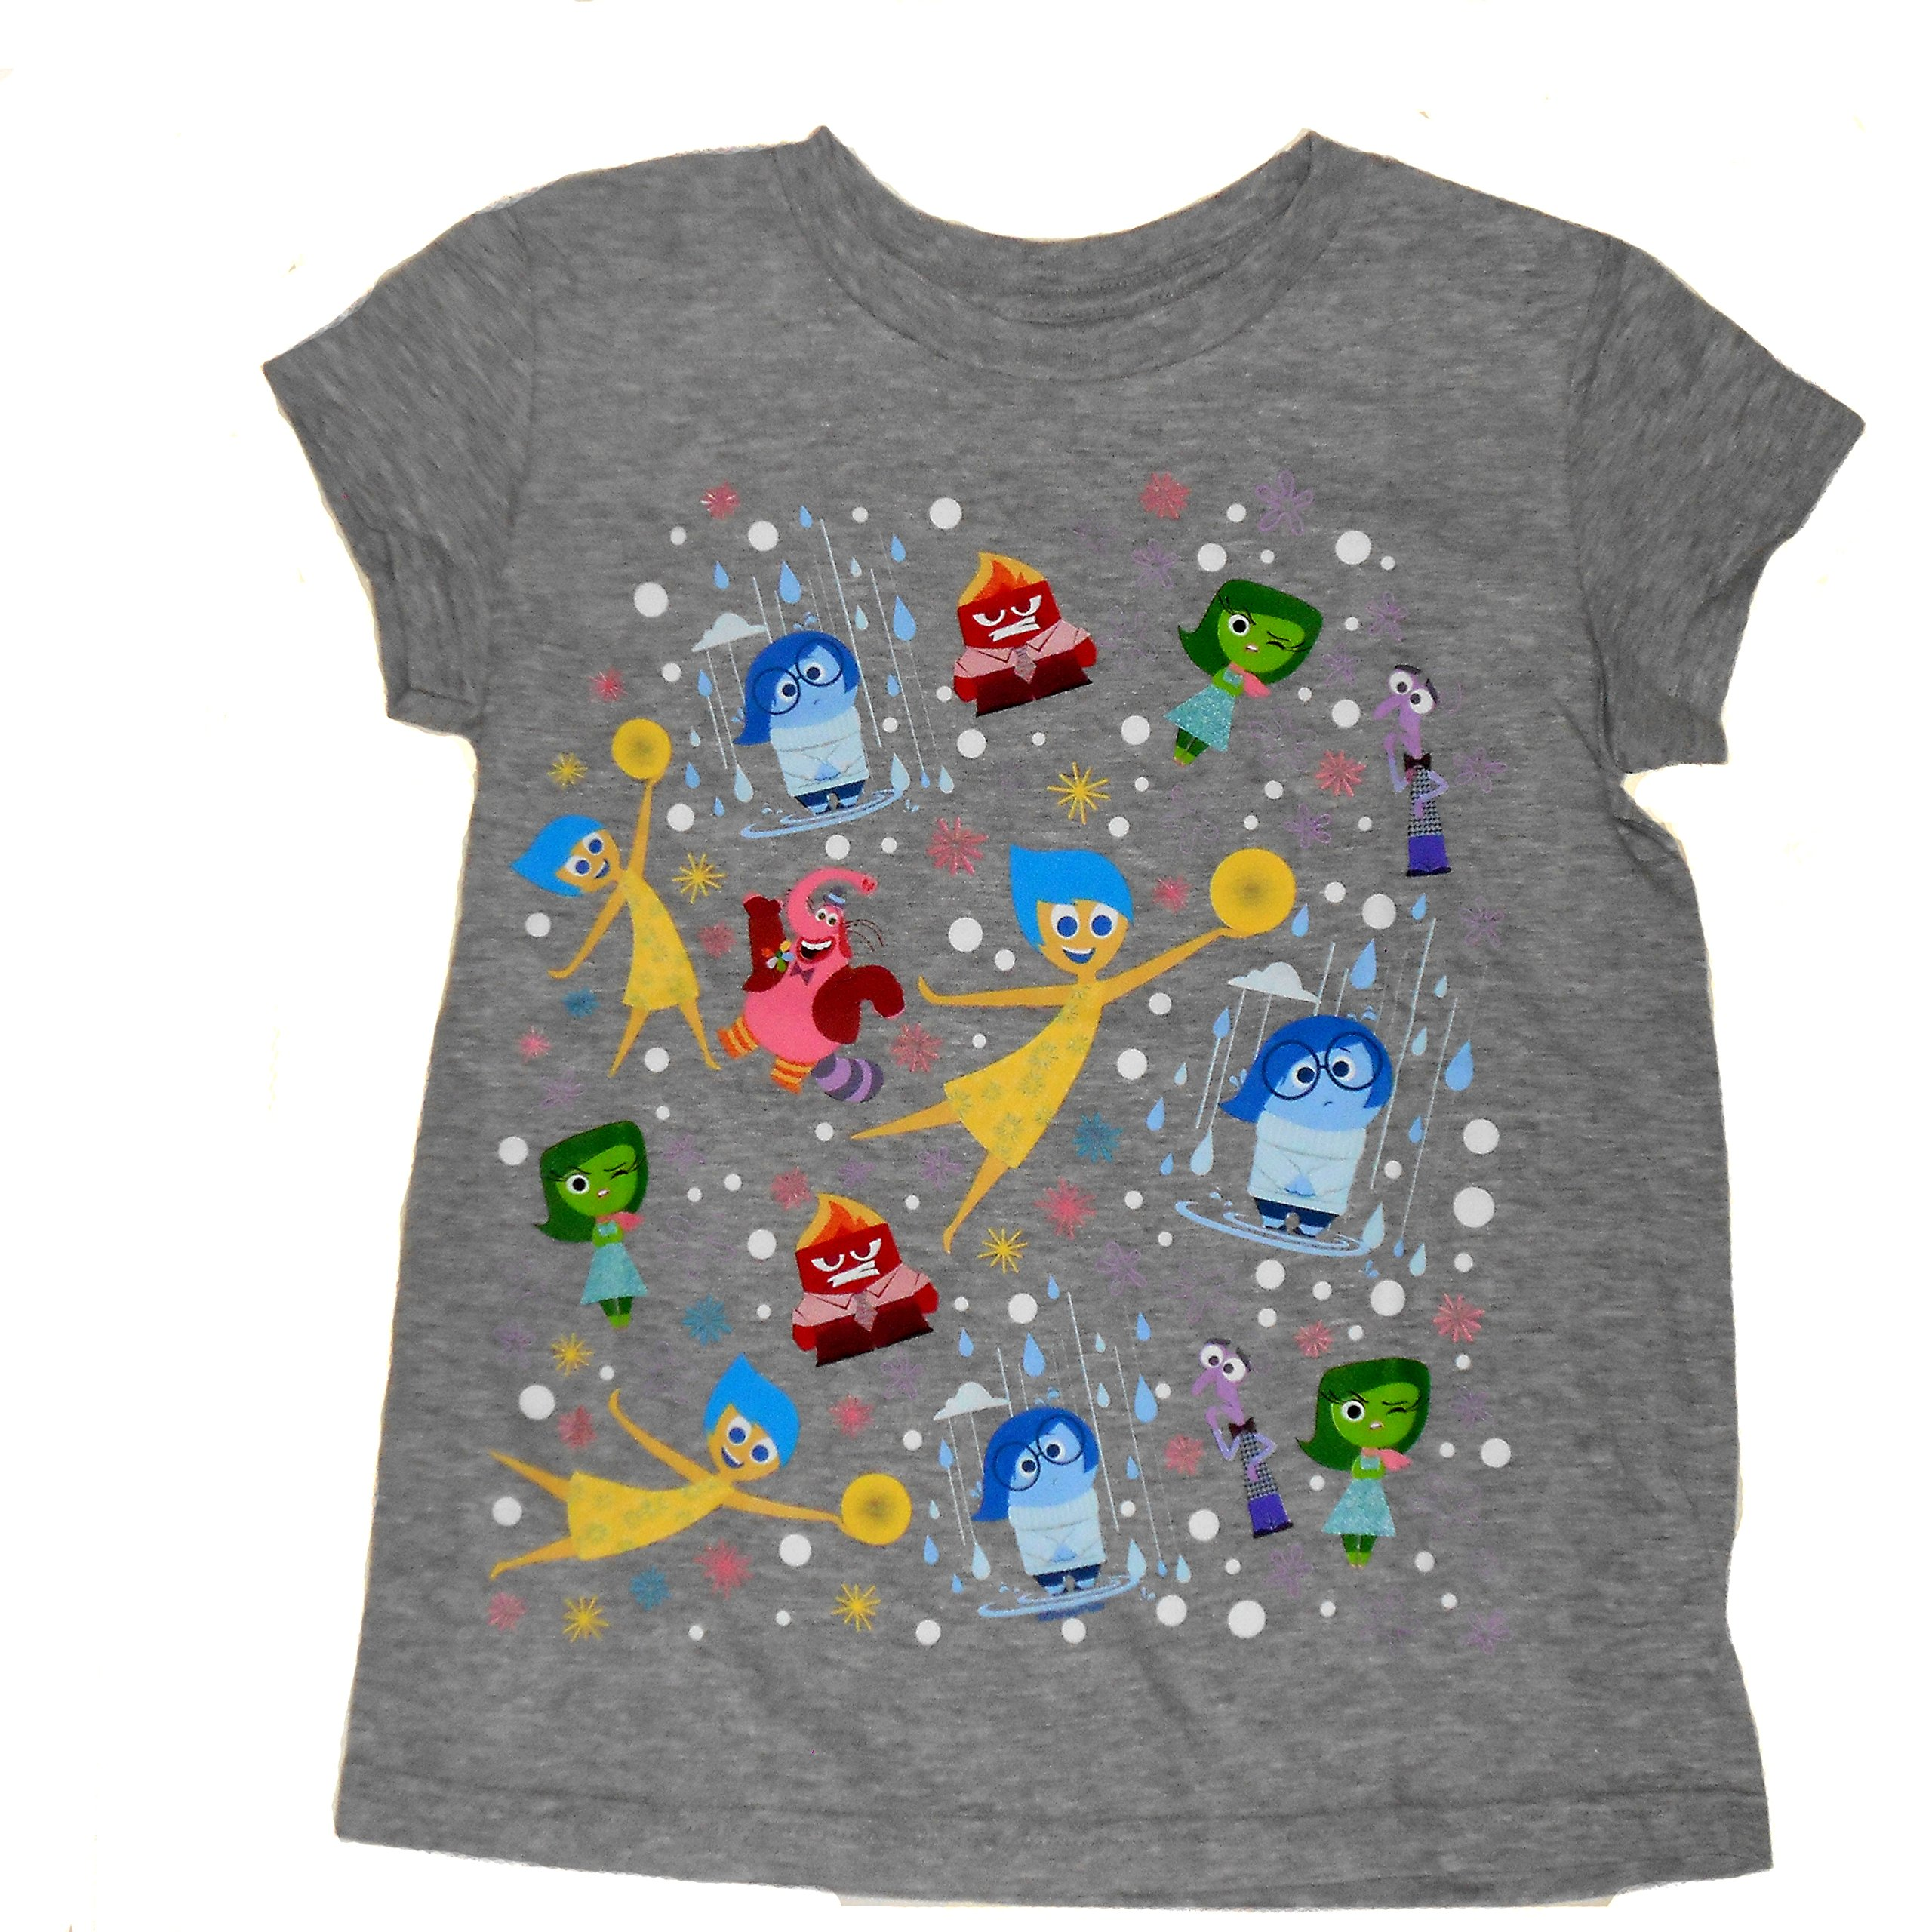 Disney Pixar Girls Inside Out Character Tee with Joy, Sadness, Anger, Disgust, Fear, plus Bing Bong!